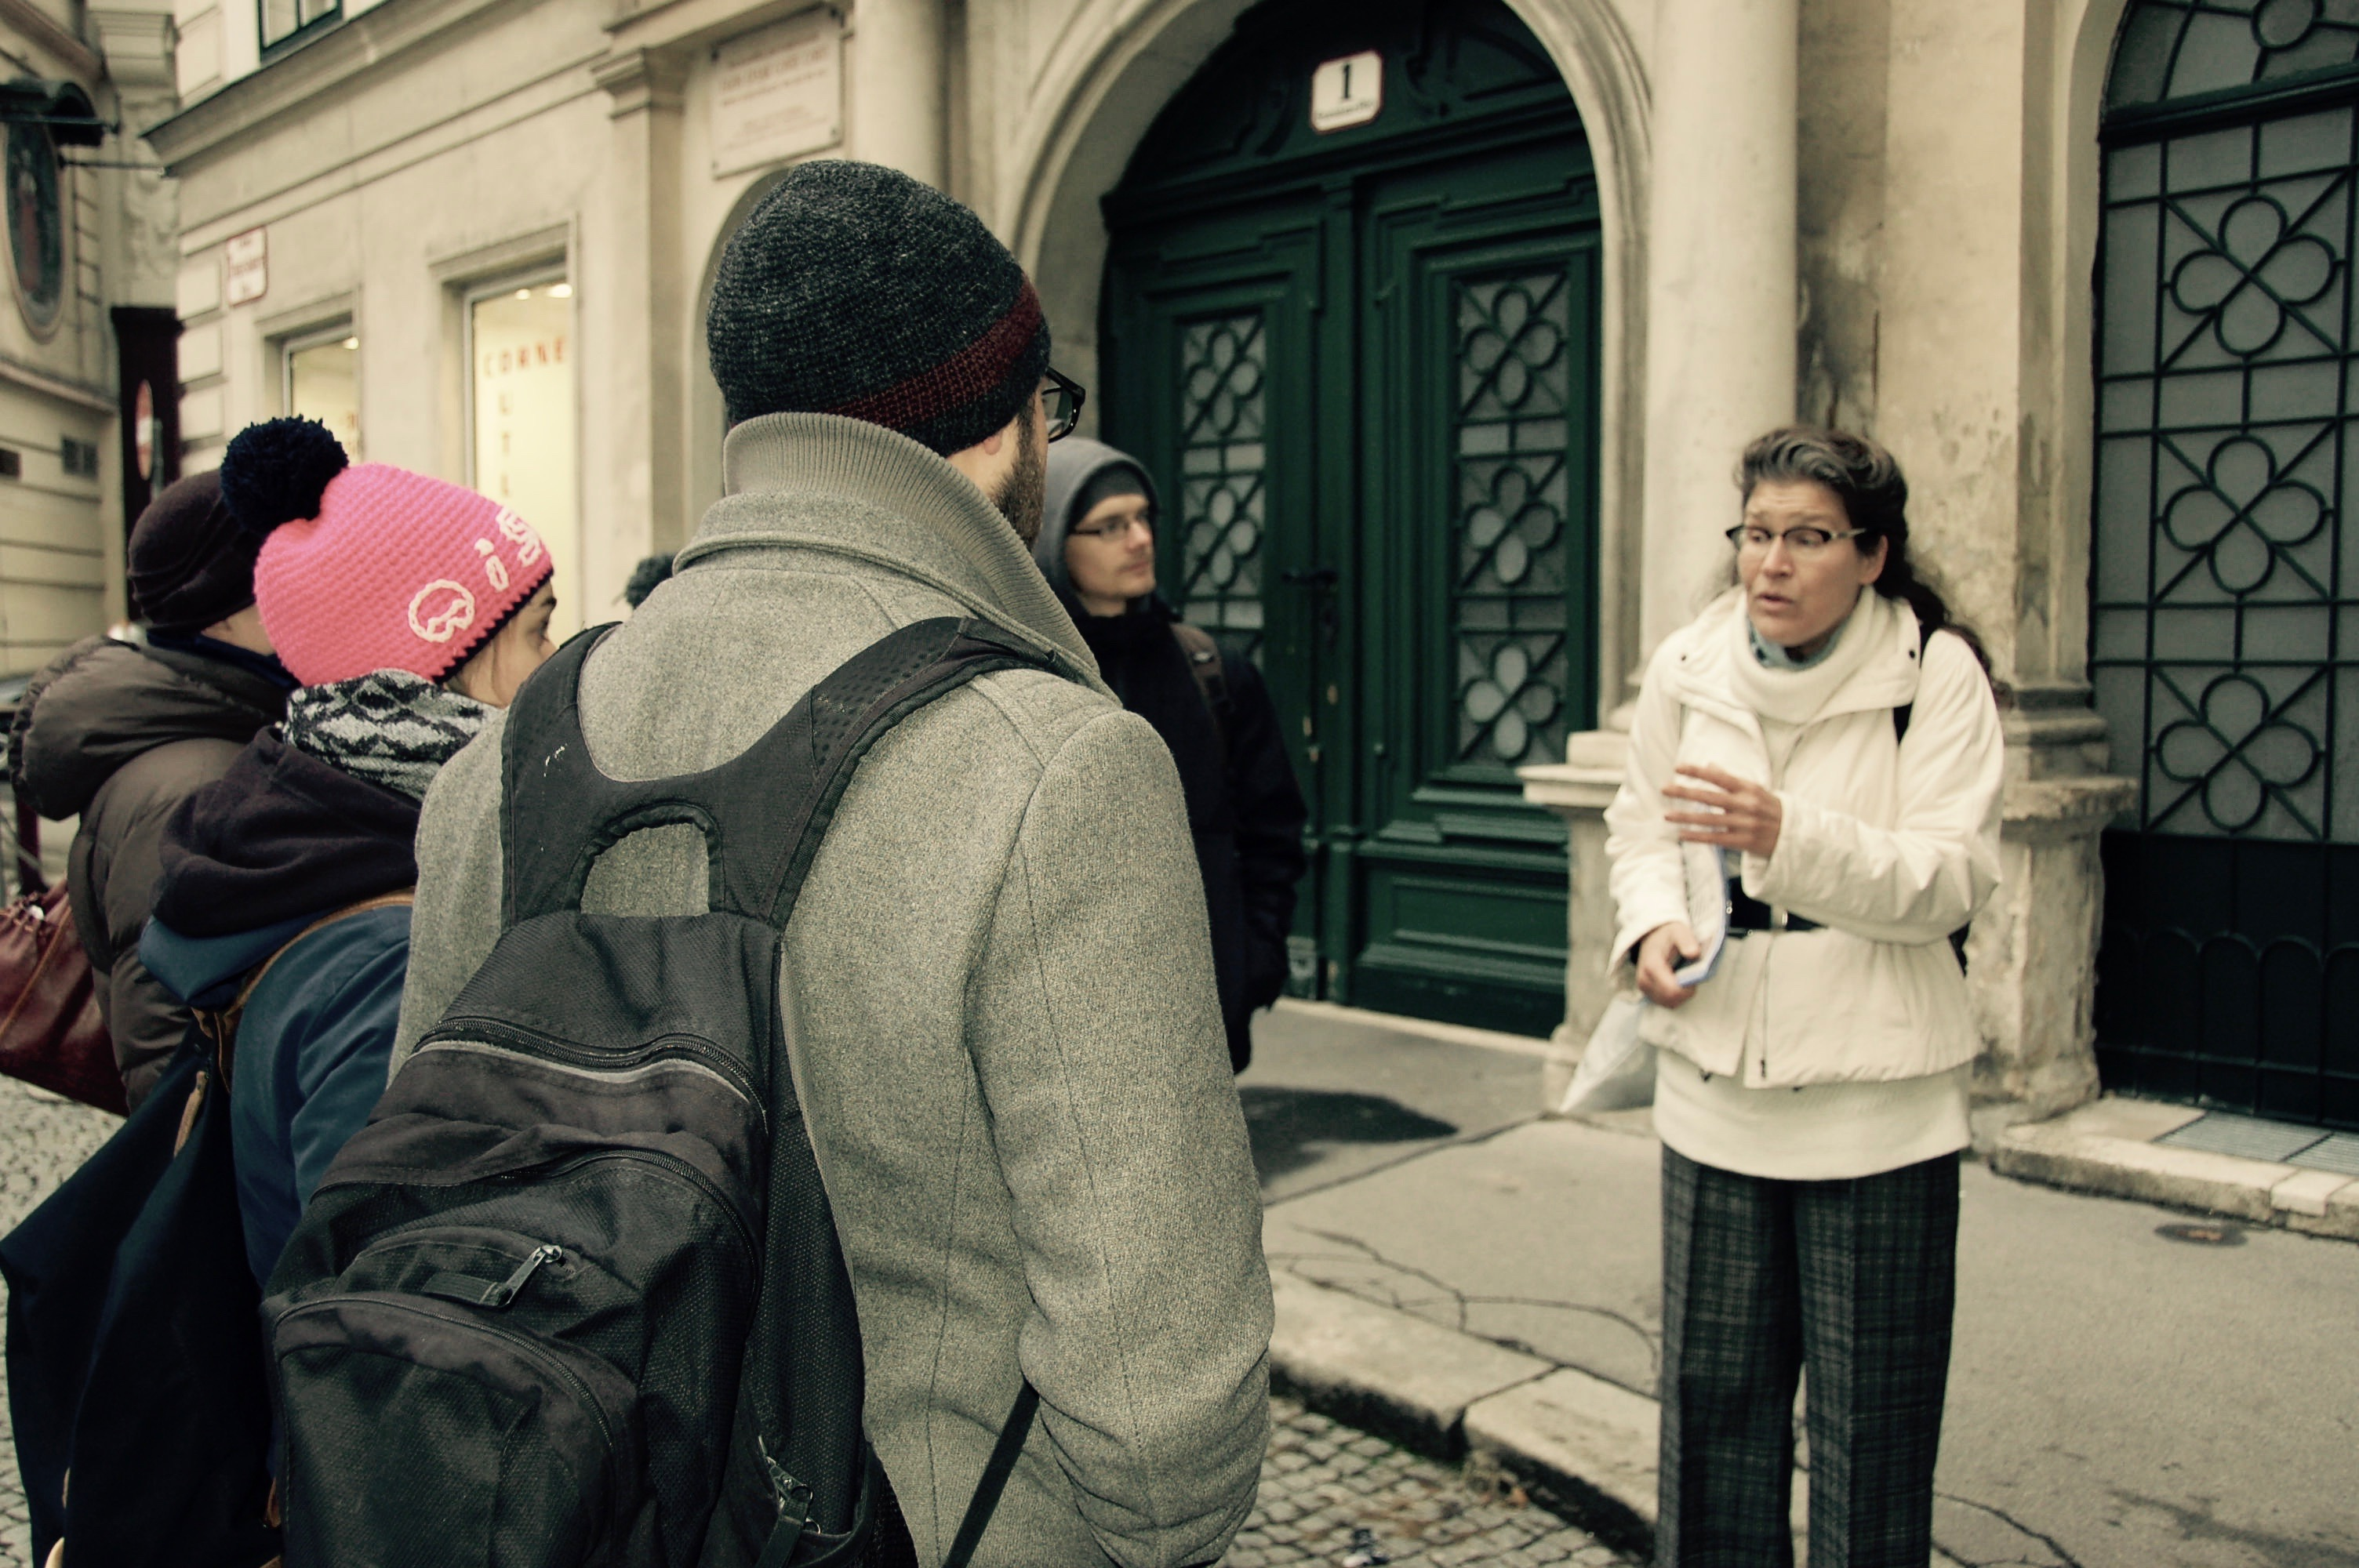 Alternative and insightful social tours in Vienna